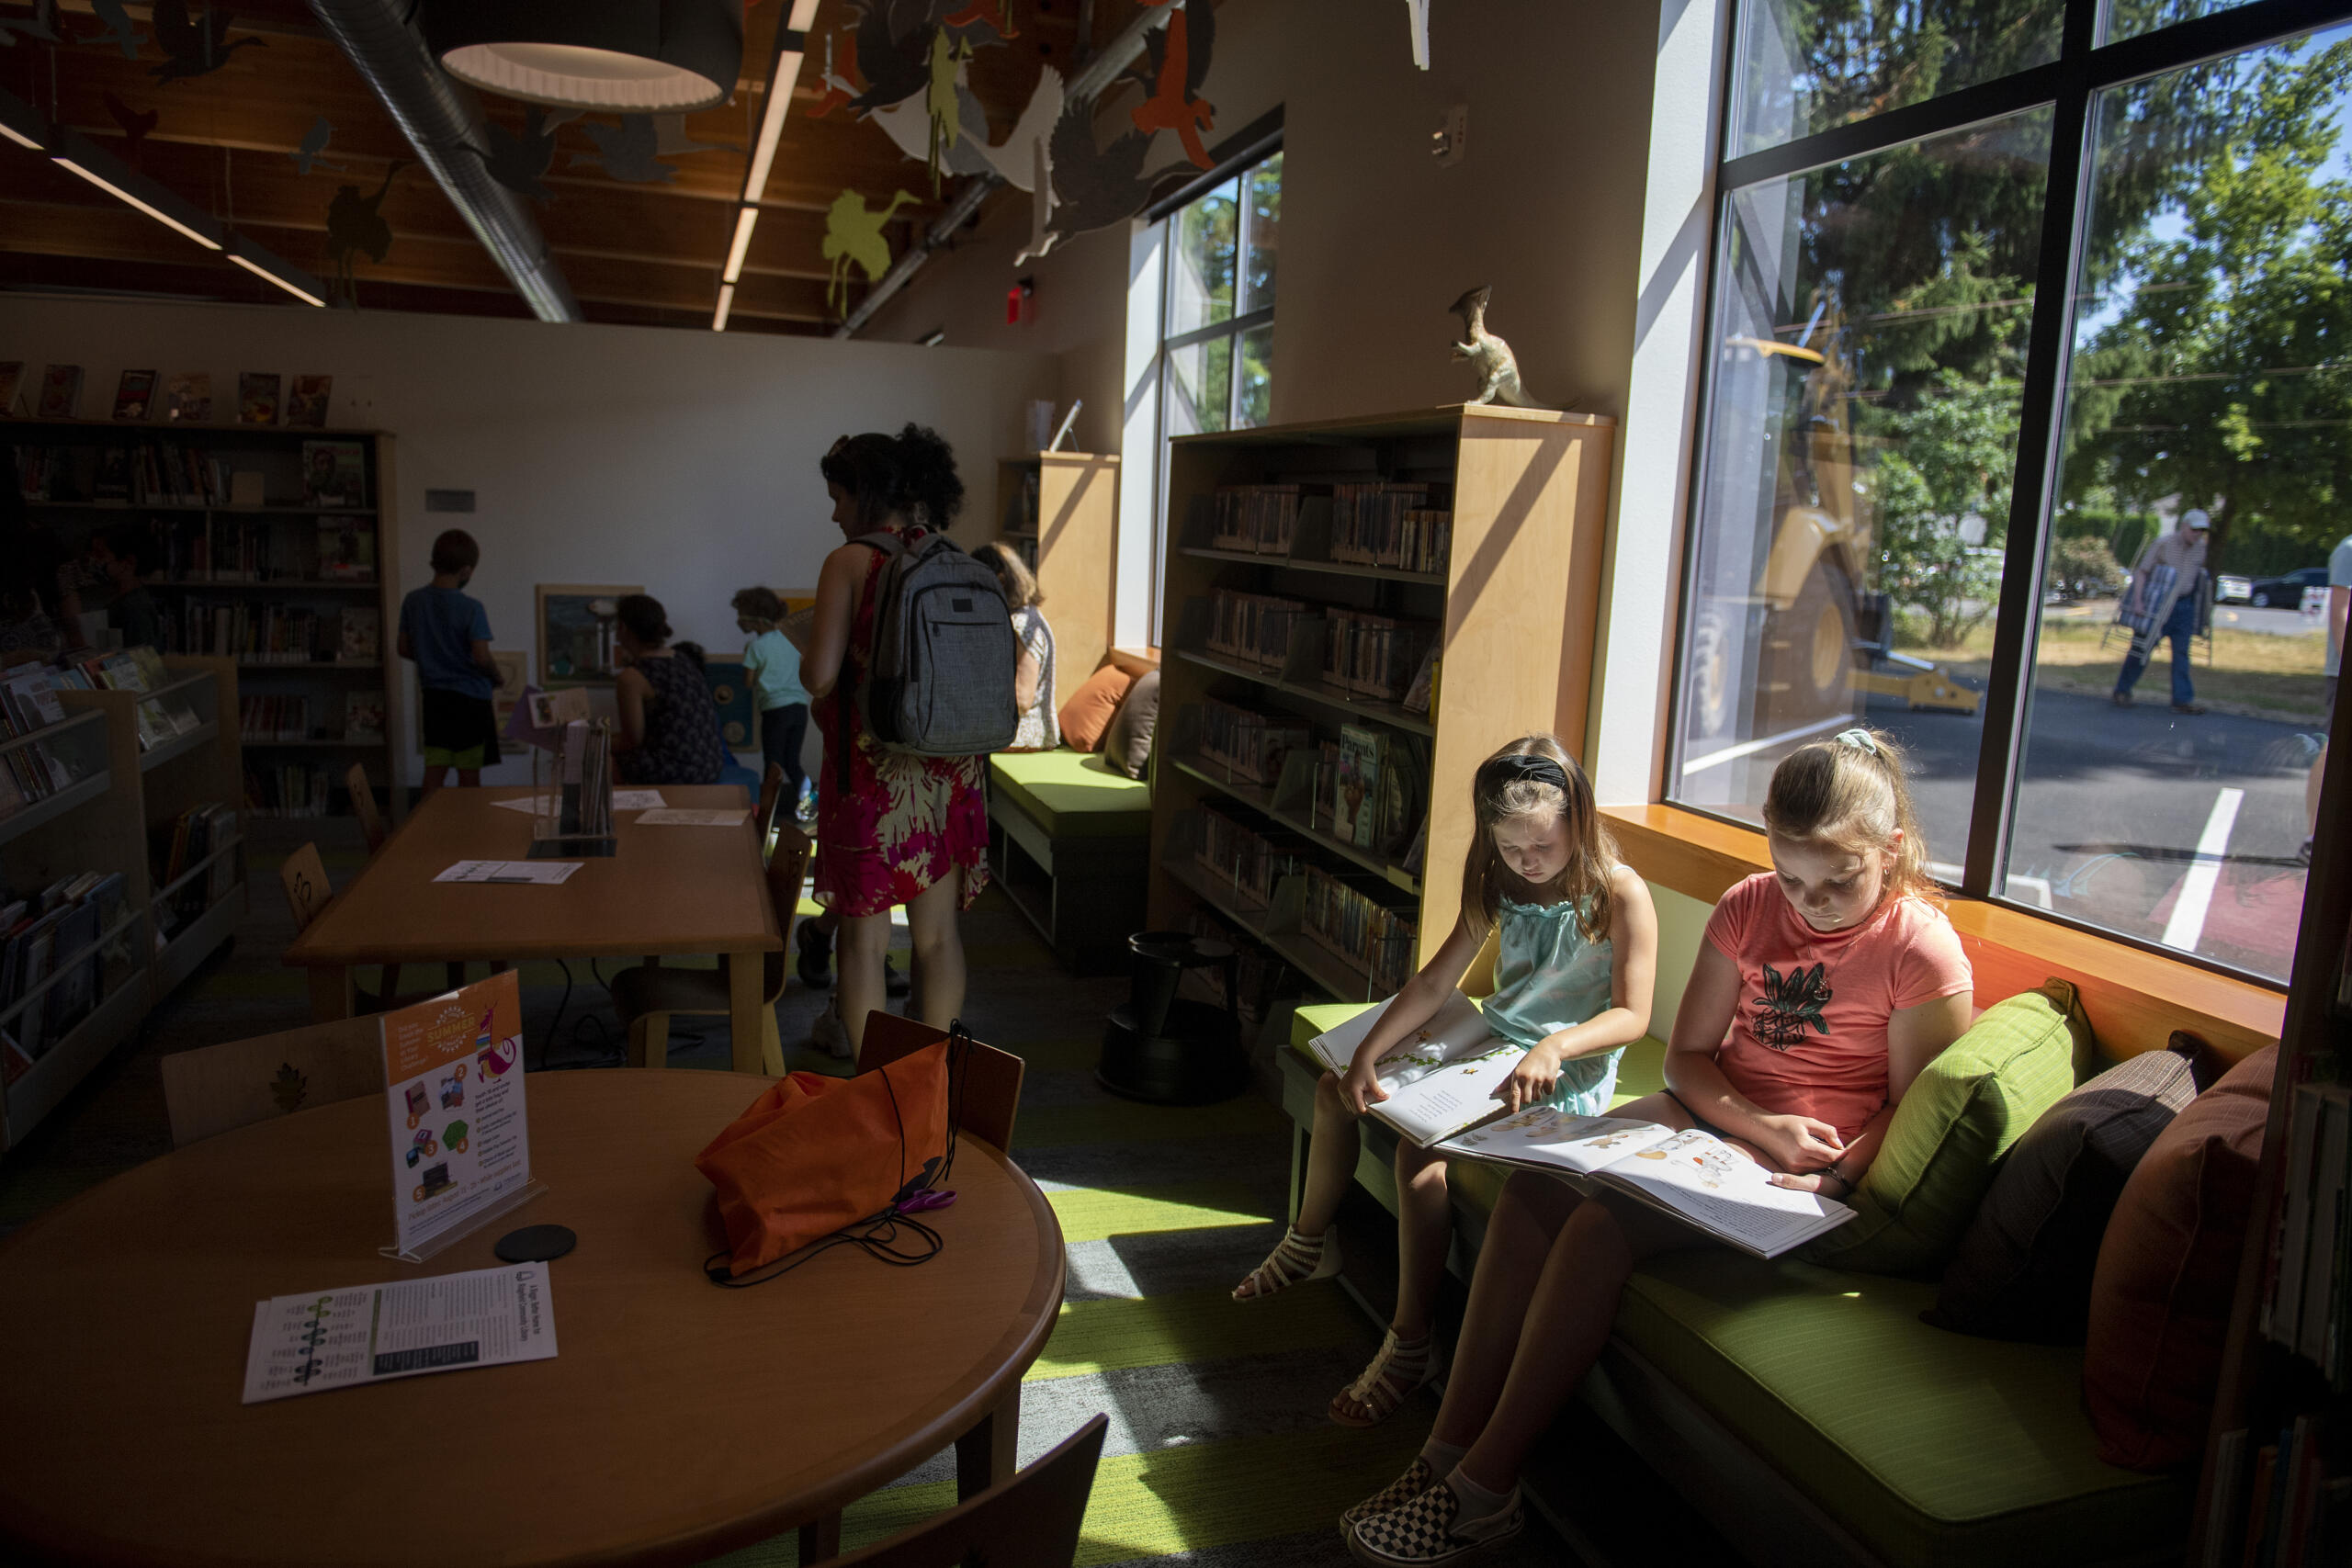 Cousins Lizzy Mire, 8, in blue, and Juel Natterstad, 10, cq, both of Ridgefield, enjoy a good book in the children's section at Ridgefield Community Library on Friday morning, July 9, 2021.